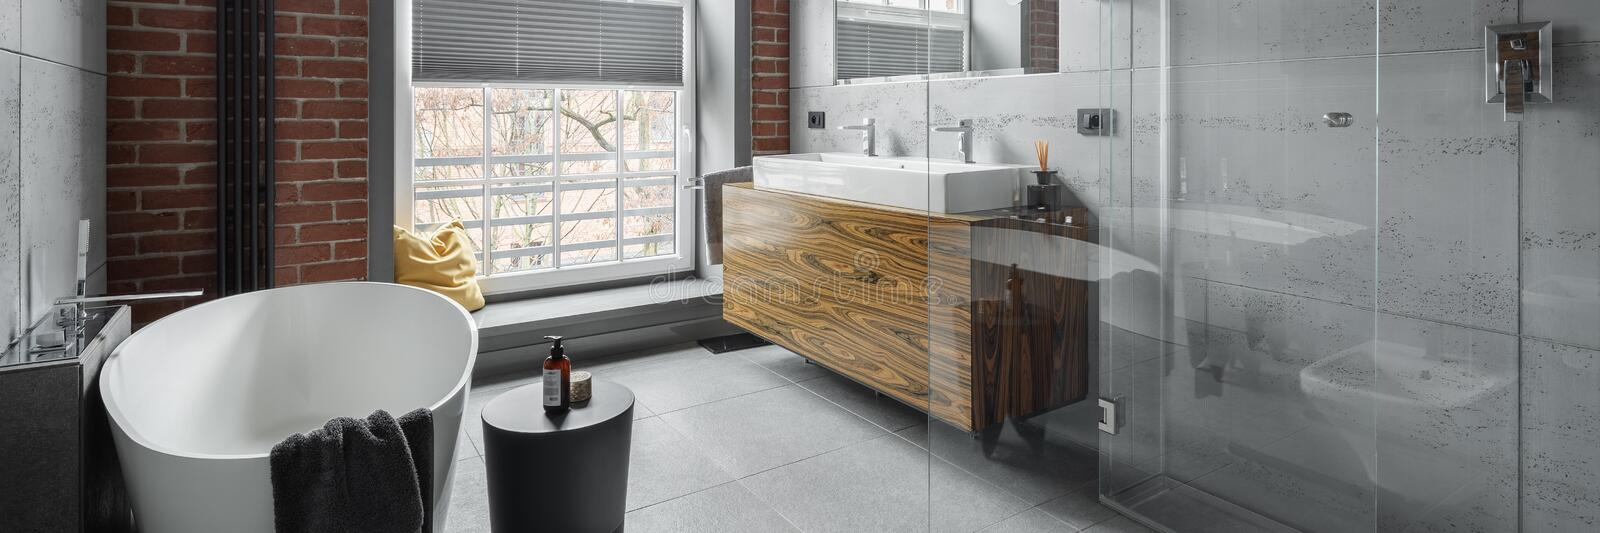 Industrial style big bathroom, panorama royalty free stock photos